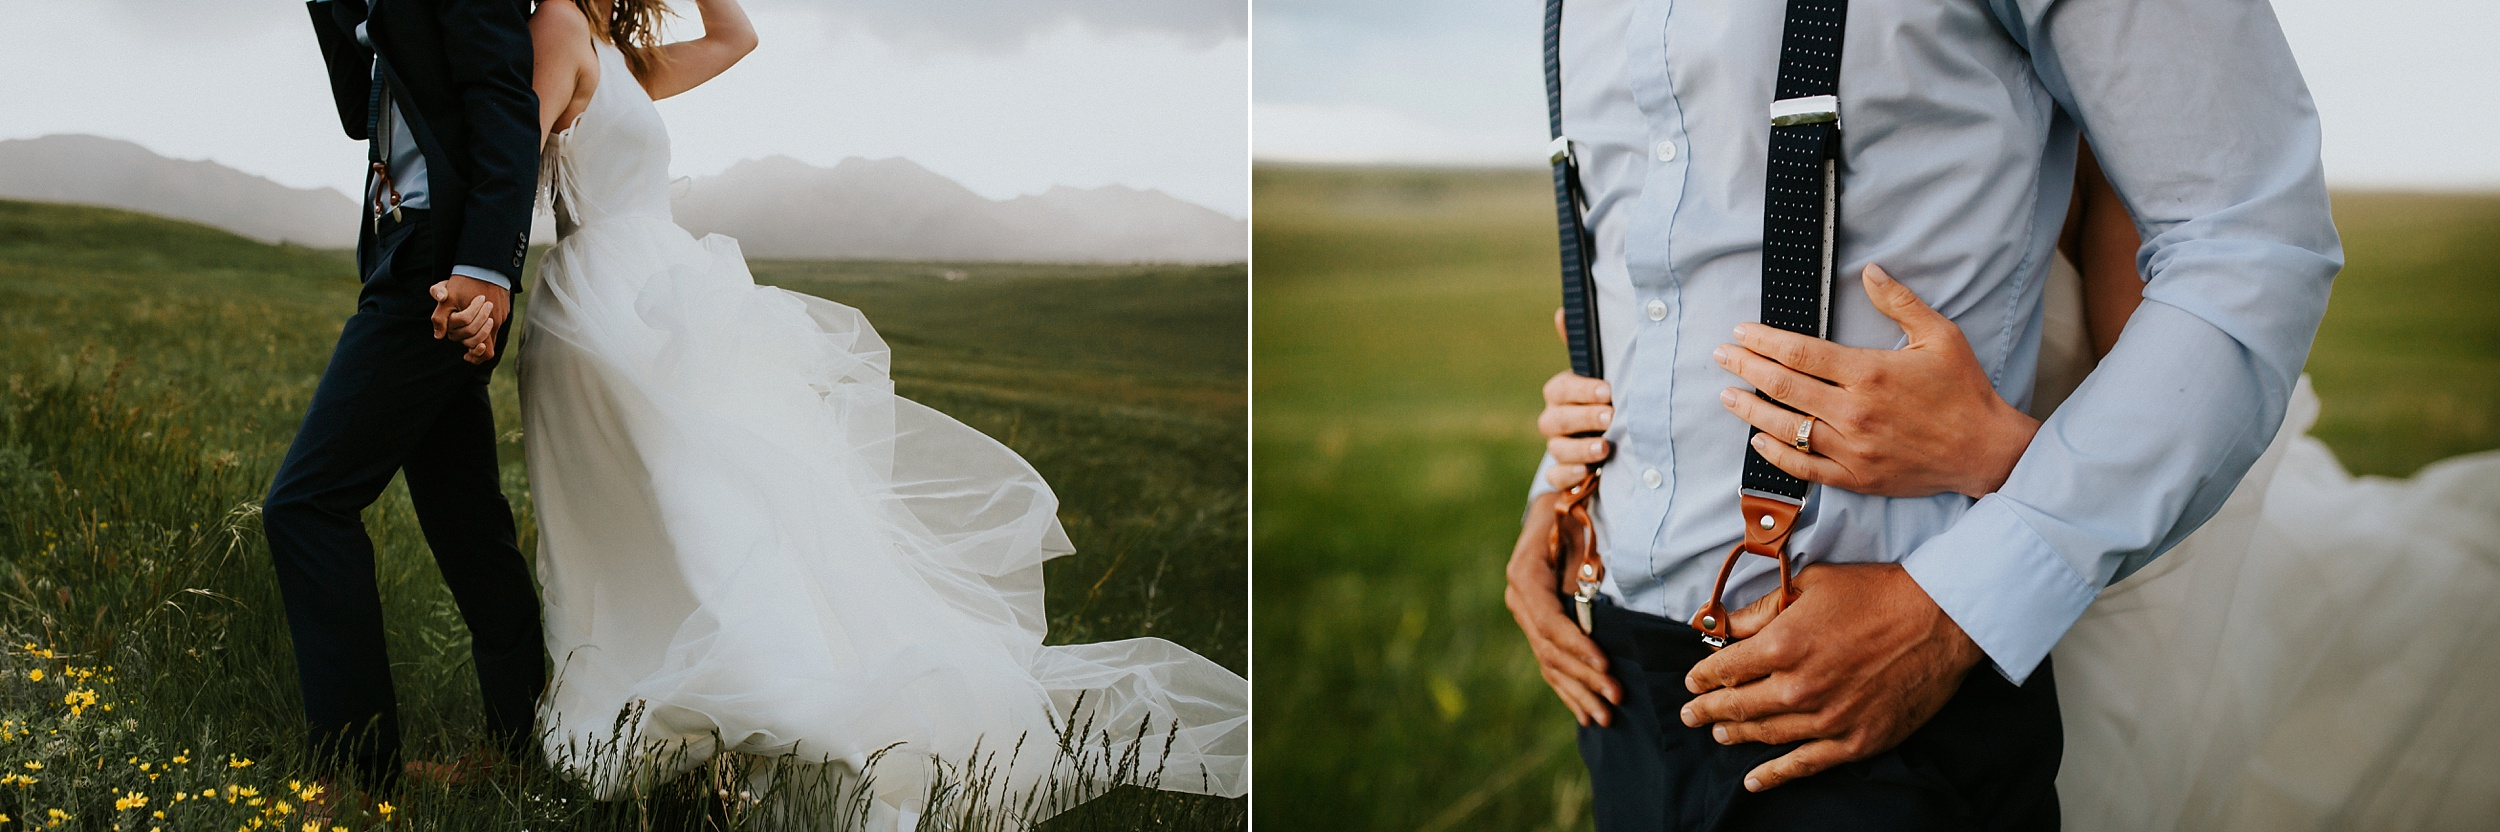 Boulder_Colorado_Elopement_Fringe_Boho_Mountains-21.jpg